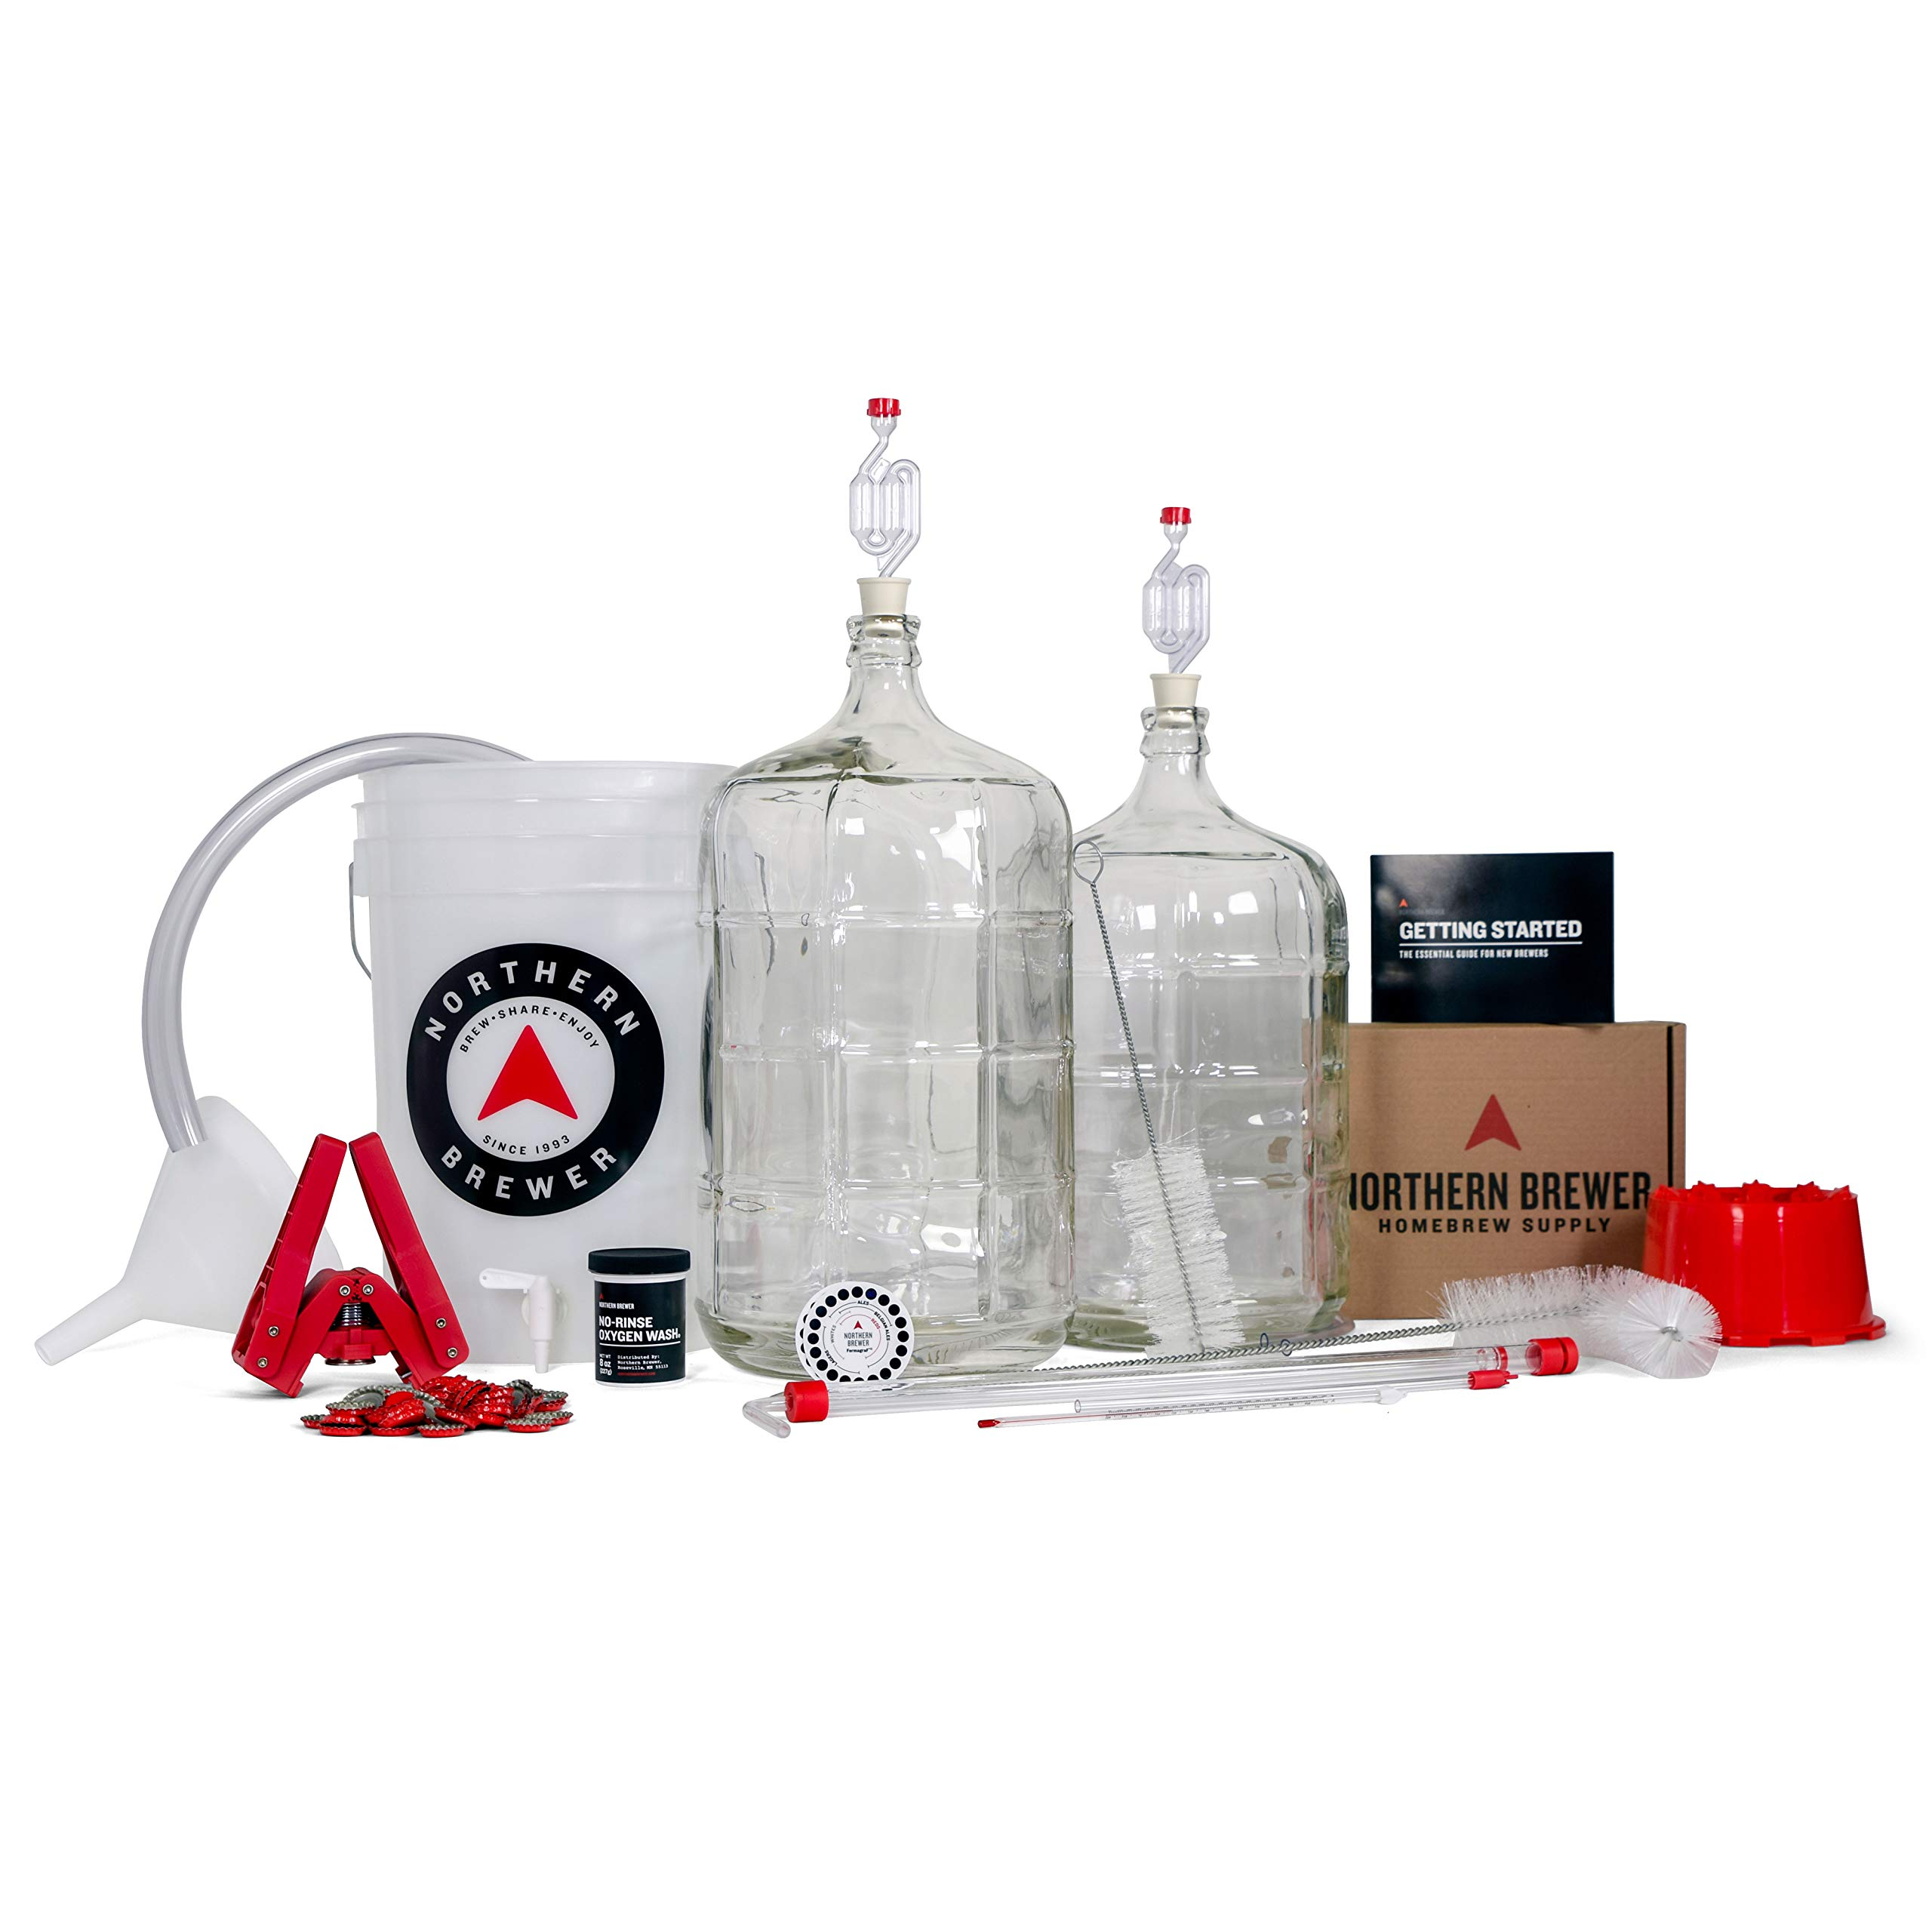 Northern Brewer Deluxe Homebrew Starter Kit, Equipment and 5 Gallon Recipe (Fresh Squished IPA) by Northern Brewer